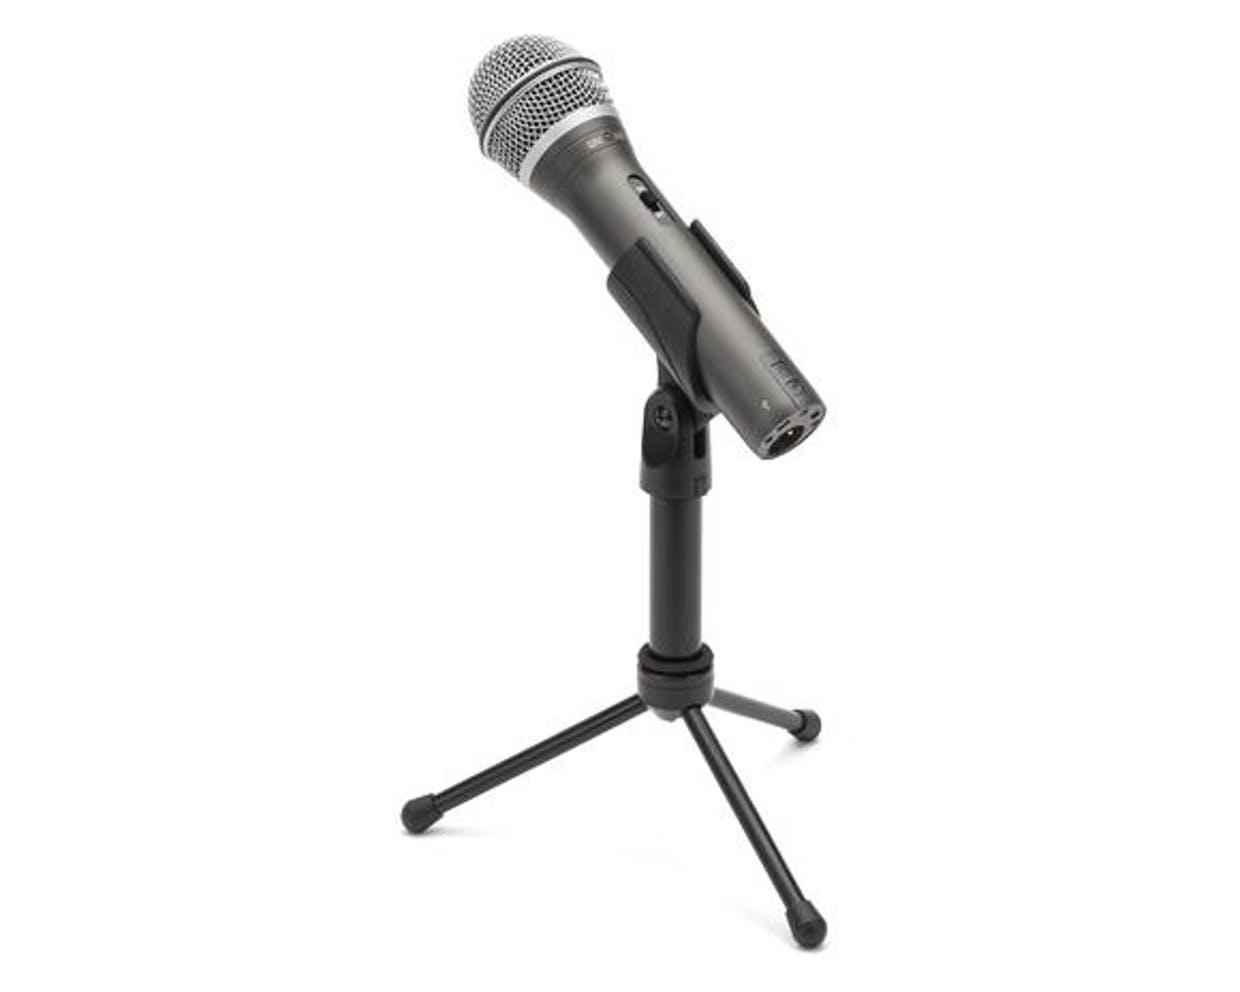 What's a good beginner microphone to start off with?